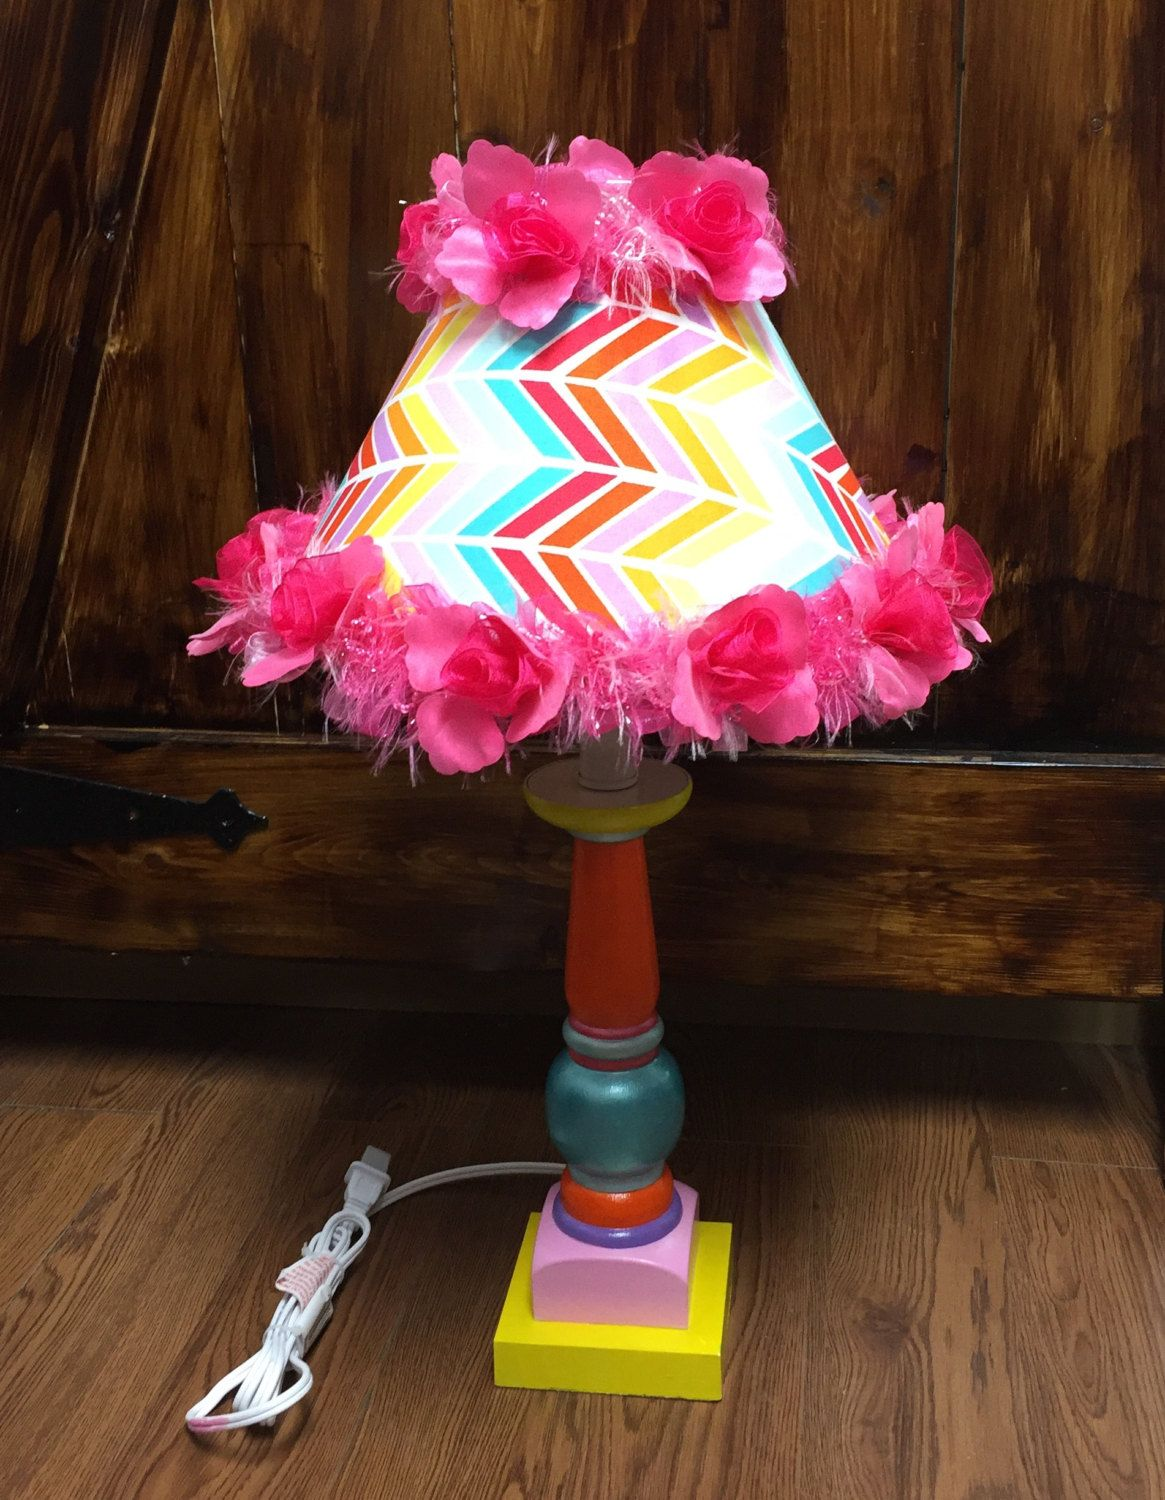 Flamingo colored lamp and fabric lampshade hand painted pink yellow orange blue teal red by HolyChicBoutiqueCo on Etsy